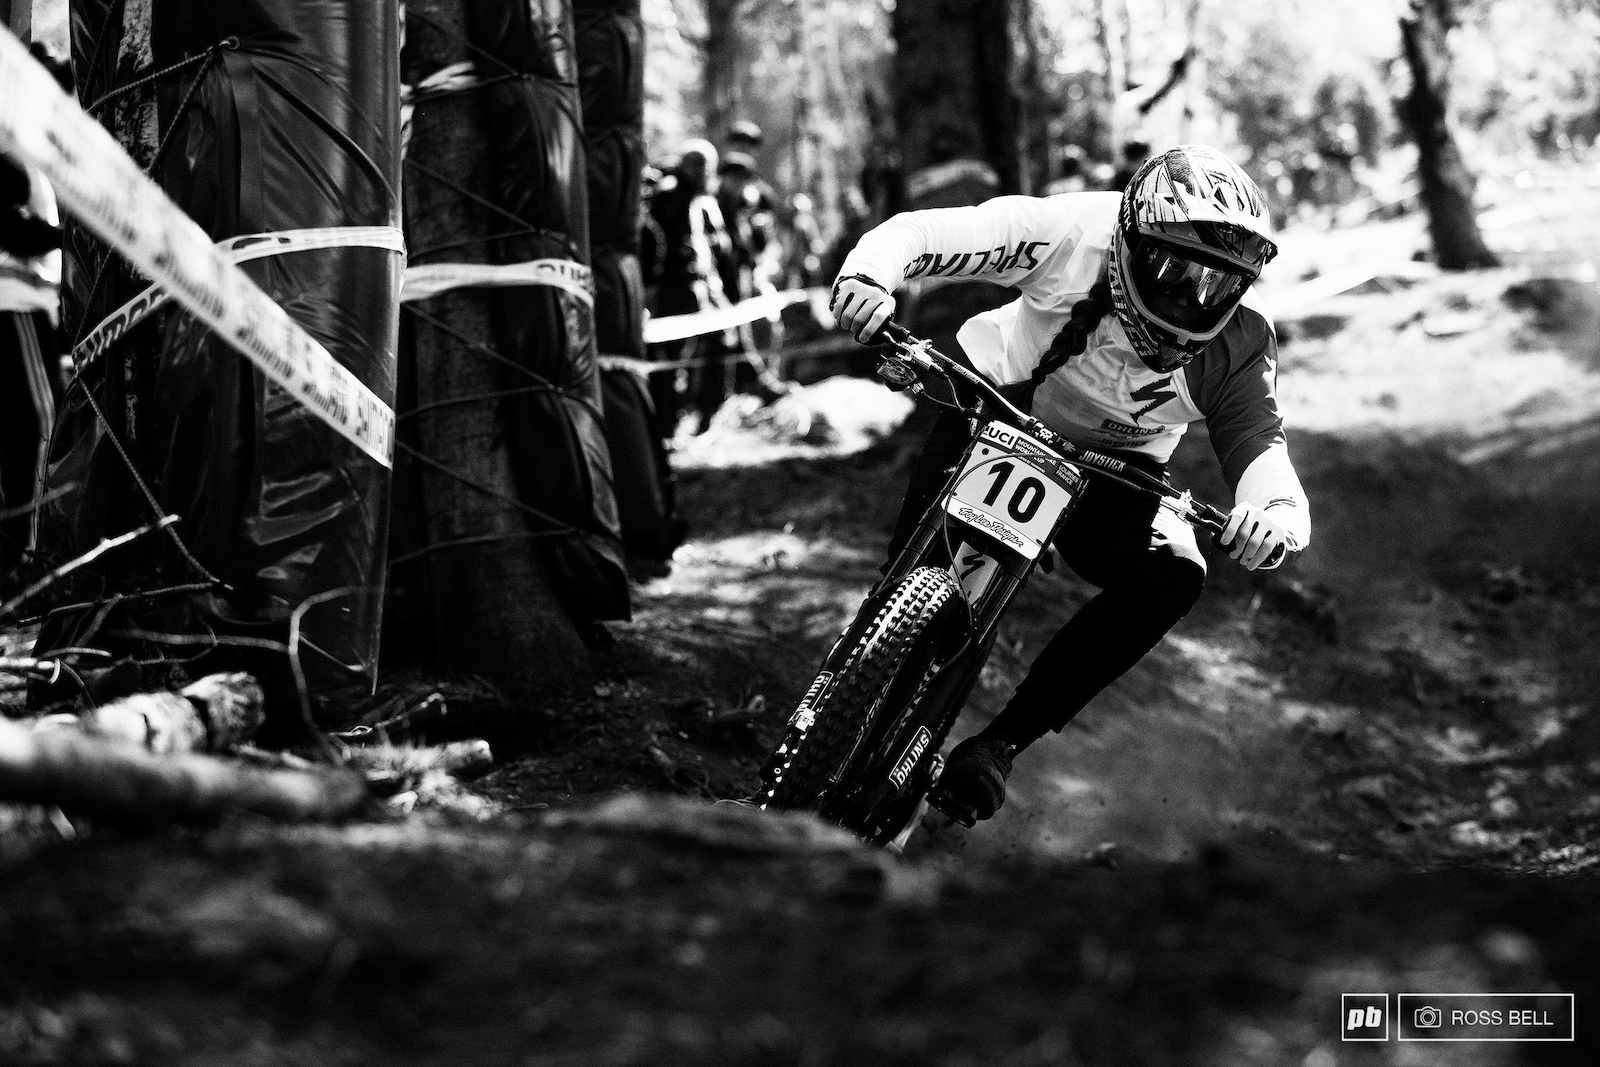 In her first WC qualifying on the Specialized Gravity Republic Miranda ended up in 8th.